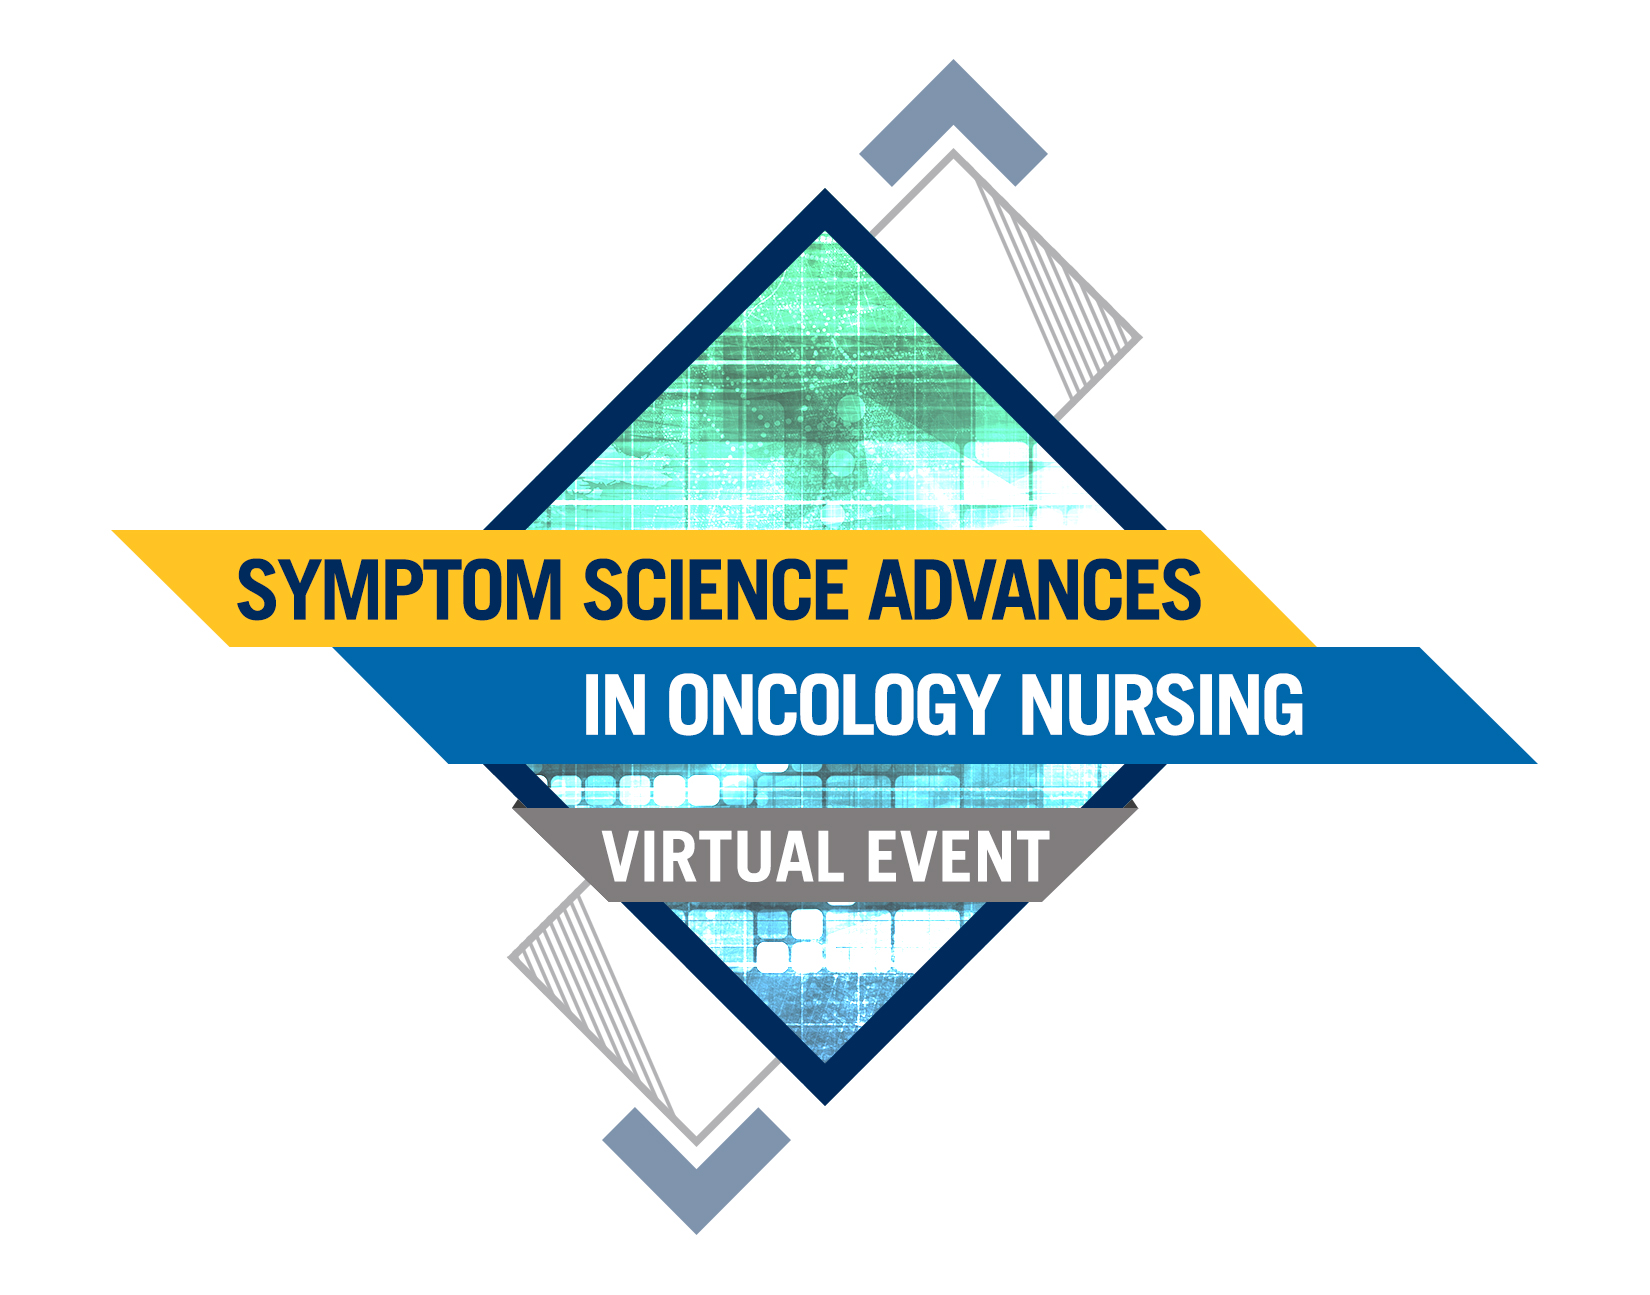 symptom science advanced in oncology nursing virtual event